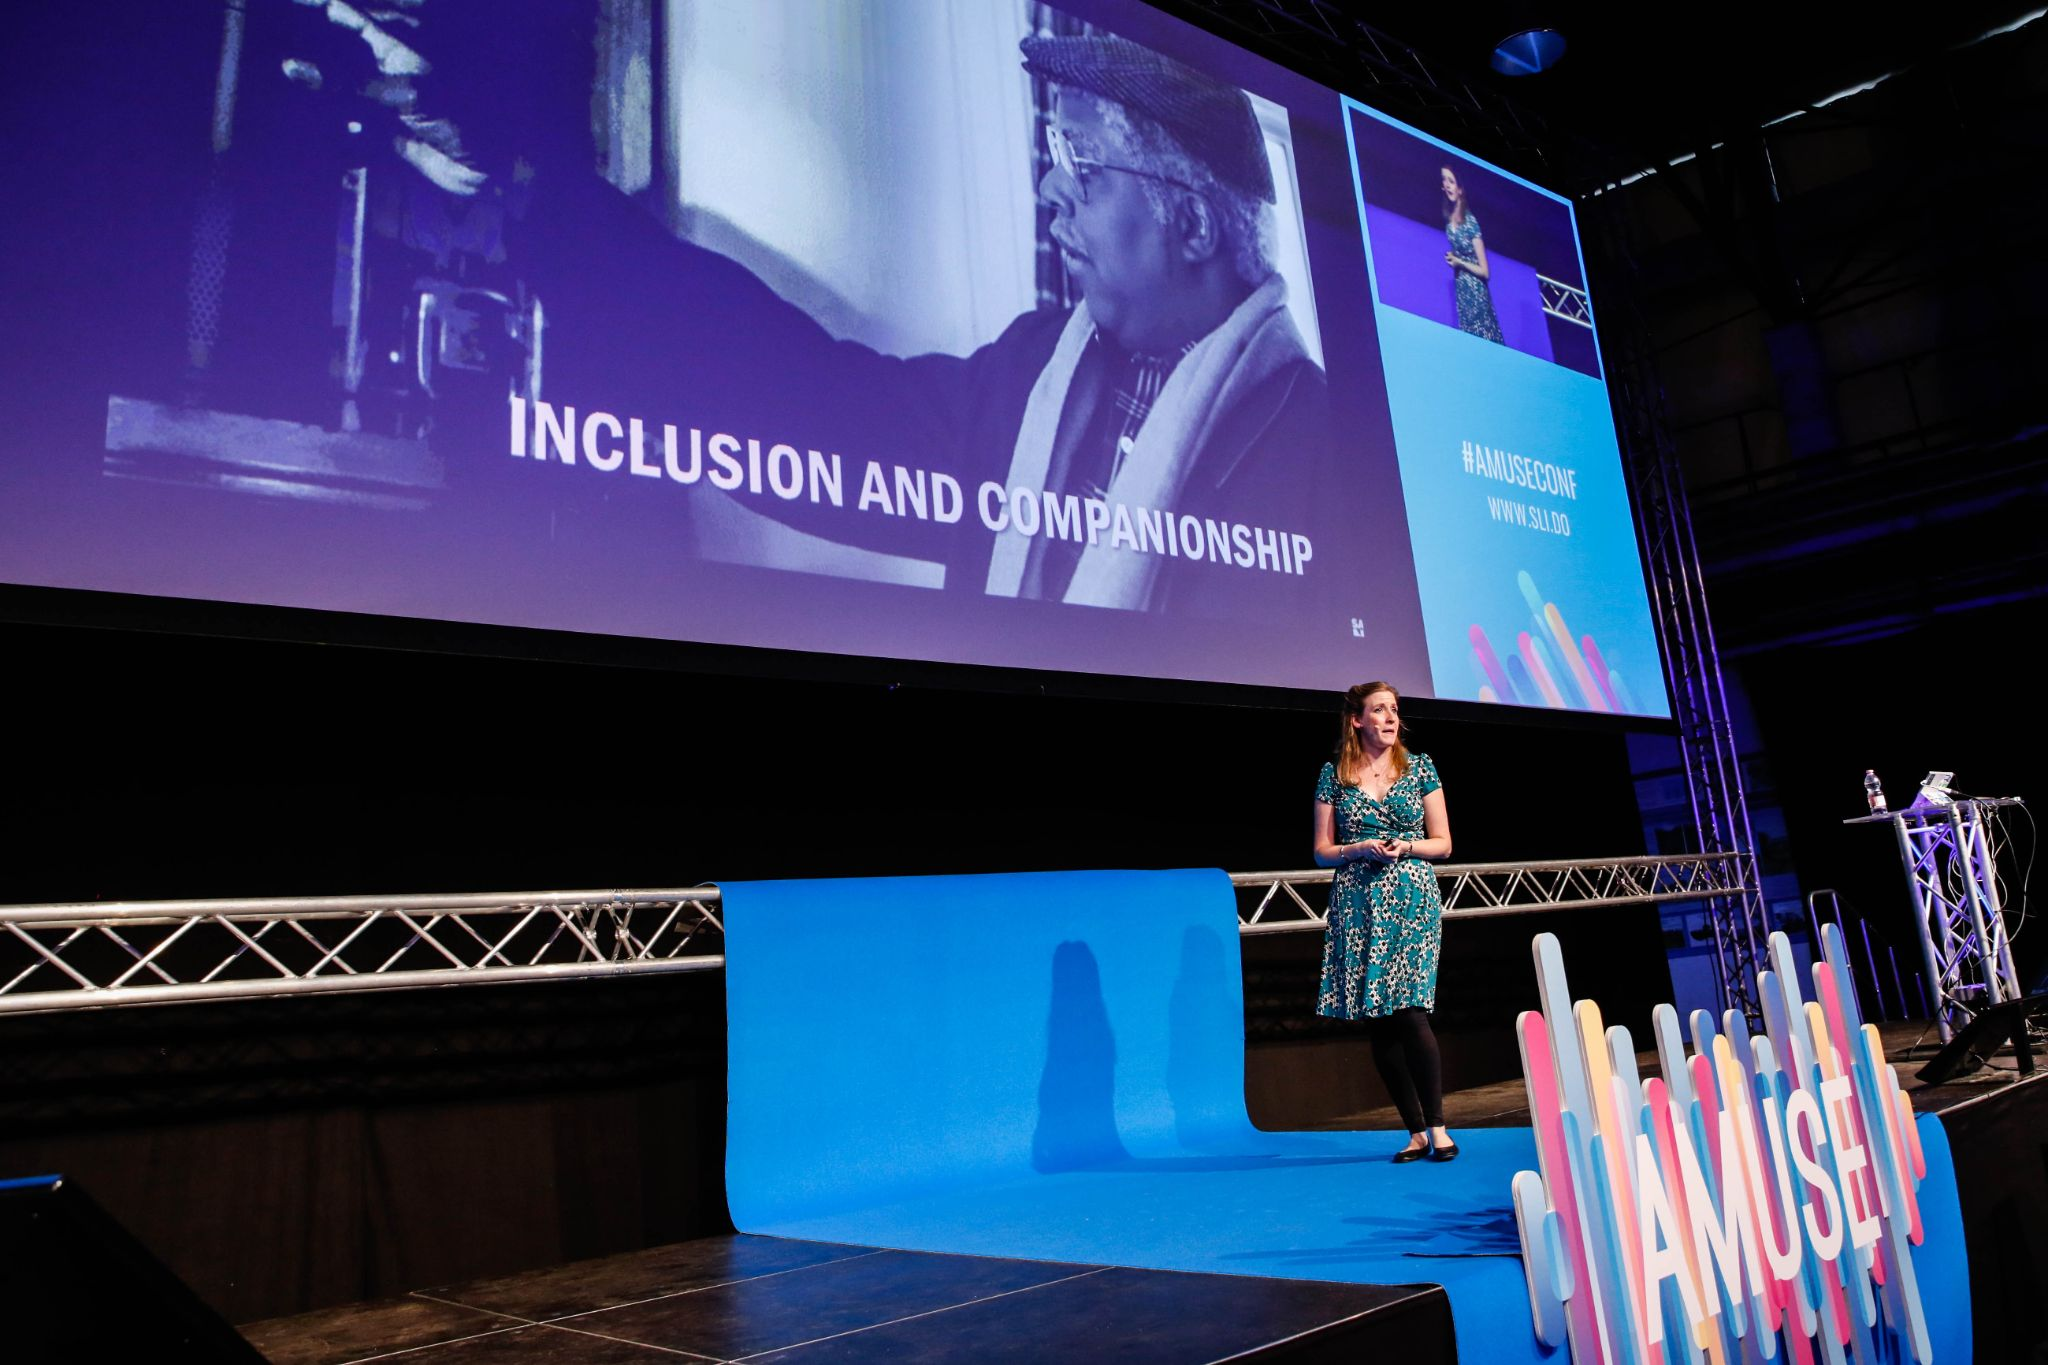 Cheryl Platz argues that multimodality maximizes inclusiveness, on stage at the 2018 Amuse UX conference.